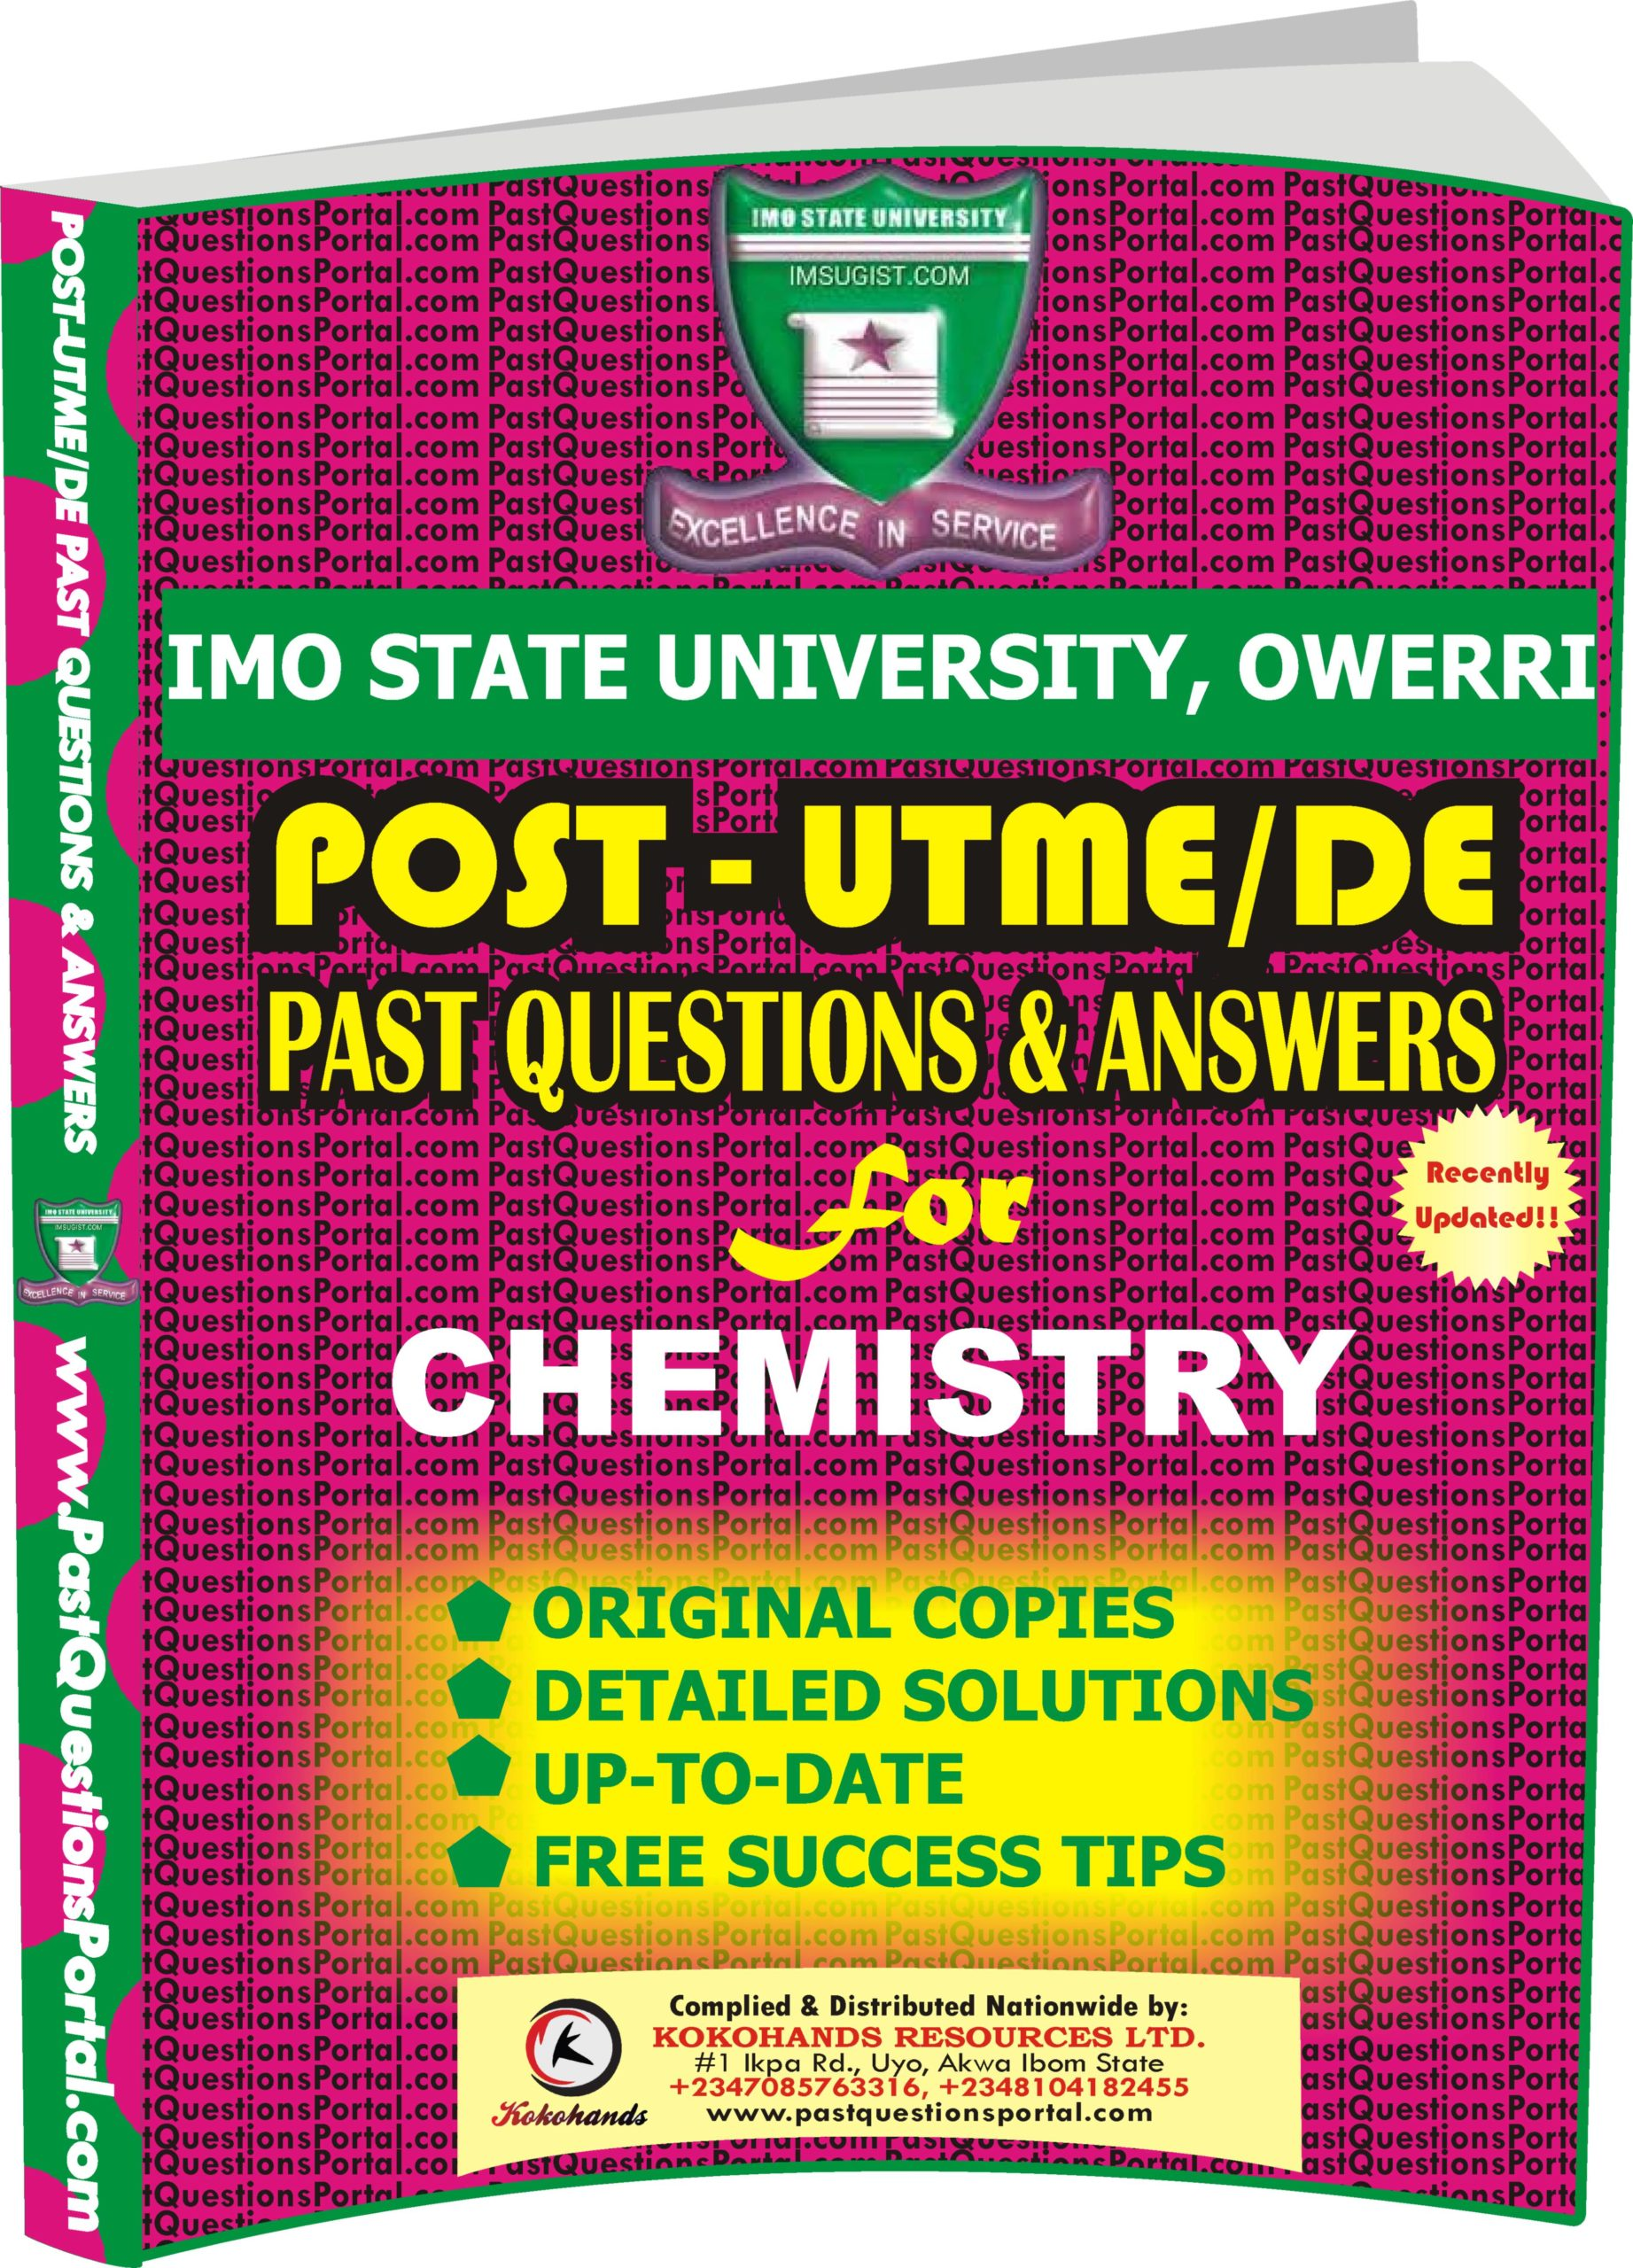 IMSU Post UTME Past Questions for CHEMISTRY